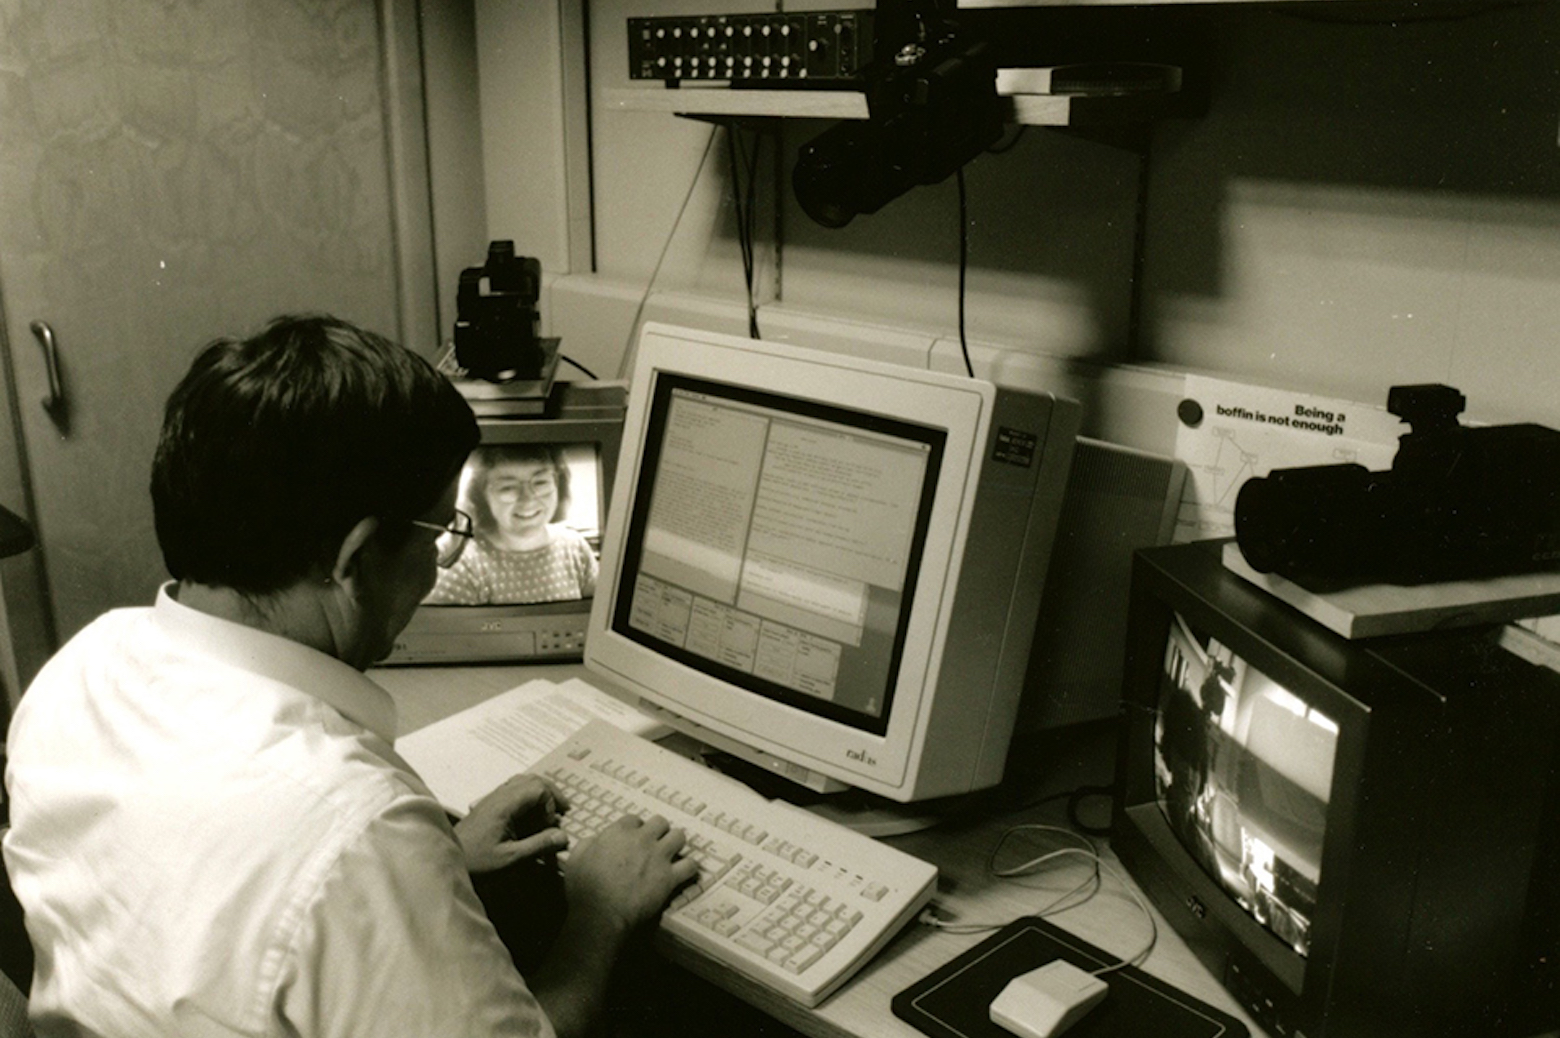 Man sitting in front of old computer doing research